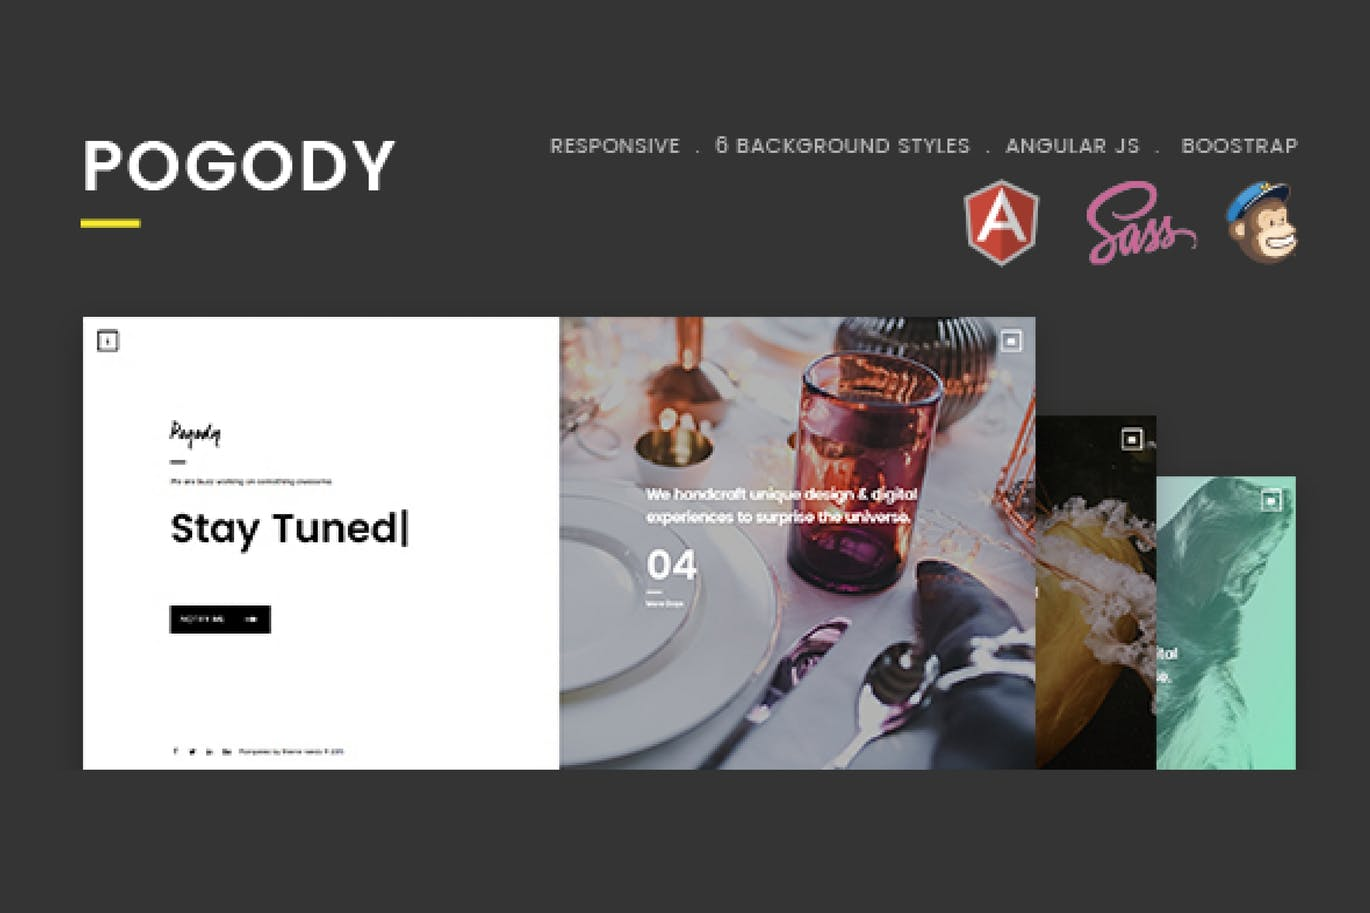 Download the Latest Site Templates on Envato Elements